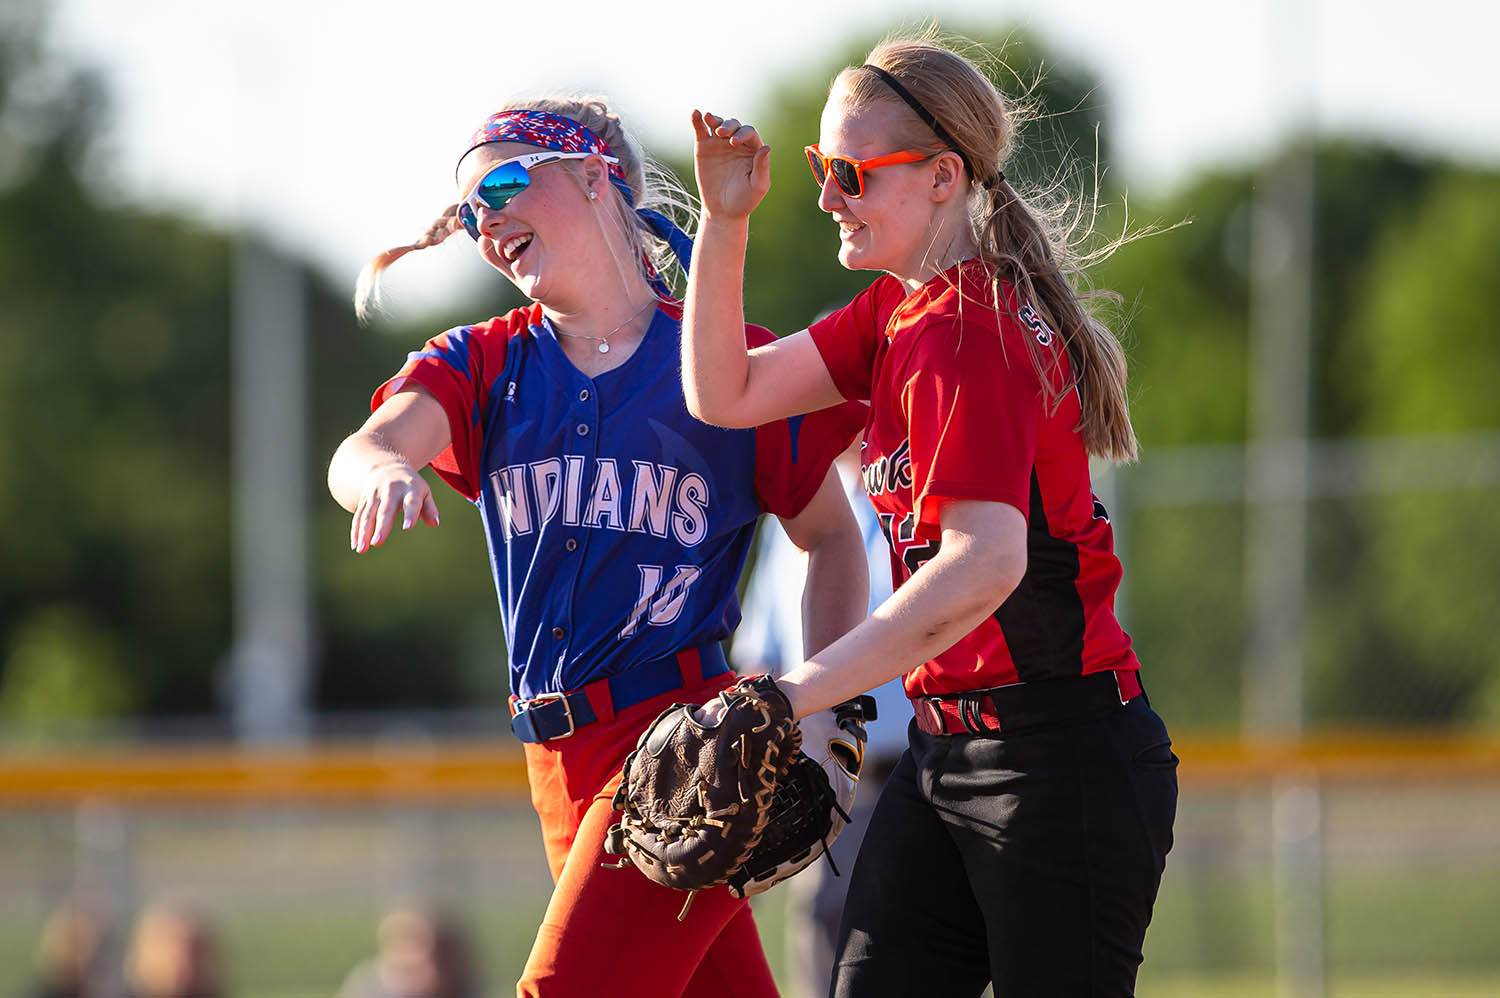 Pawnee's Carsen Jarrett and Morrisonville's Hallie Schneider high five after as they come off the field after finishing out the sixth inning against the CS8 All-Stars during the 2019 Land of Lincoln Softball Classic at the Land of Lincoln Jr. Olympic Softball Complex, Monday, June 10, 2019, in Springfield, Ill. [Justin L. Fowler/The State Journal-Register]